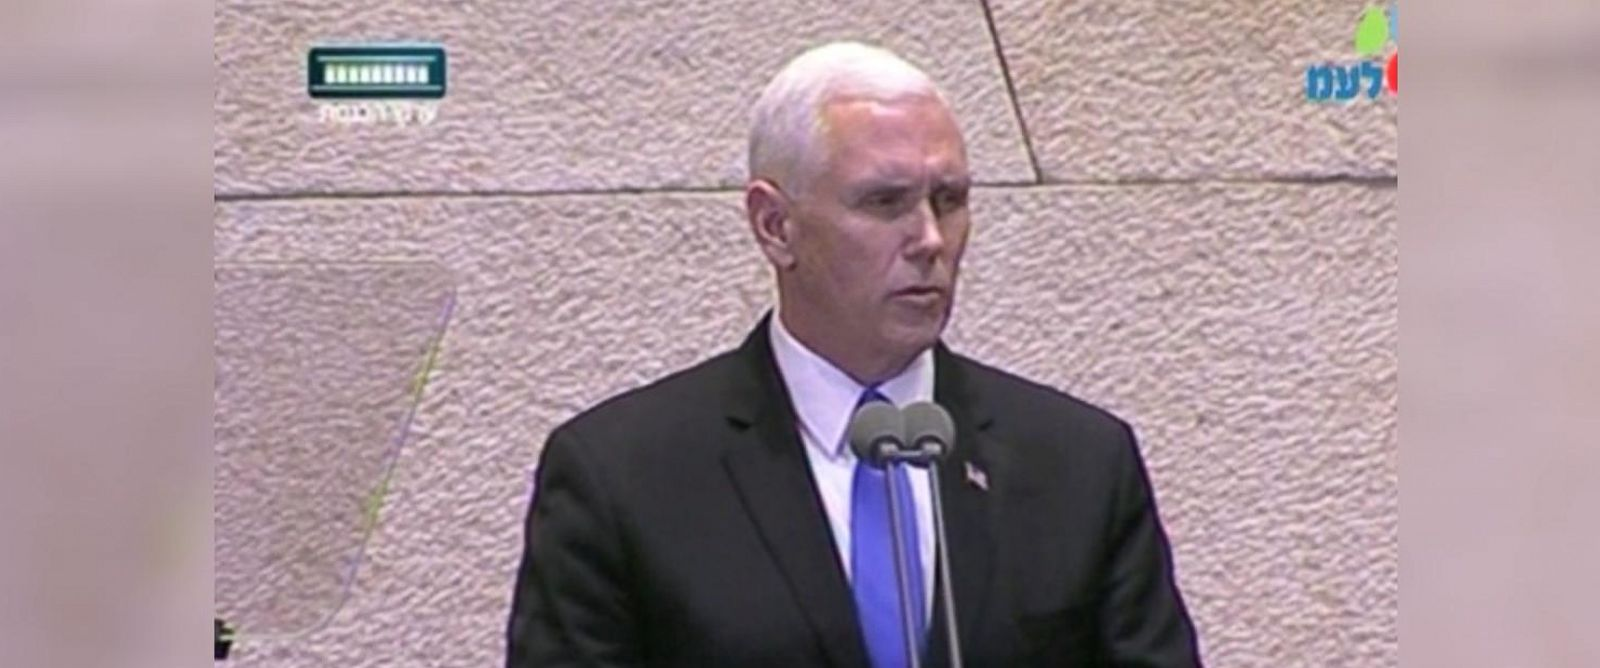 """VIDEO: Vice President Mike Pence told Israeli lawmakers today that the United States intends to open an embassy in Jerusalem """"before the end of next year,"""" the most specific timeline the White House has so far offered for the move."""